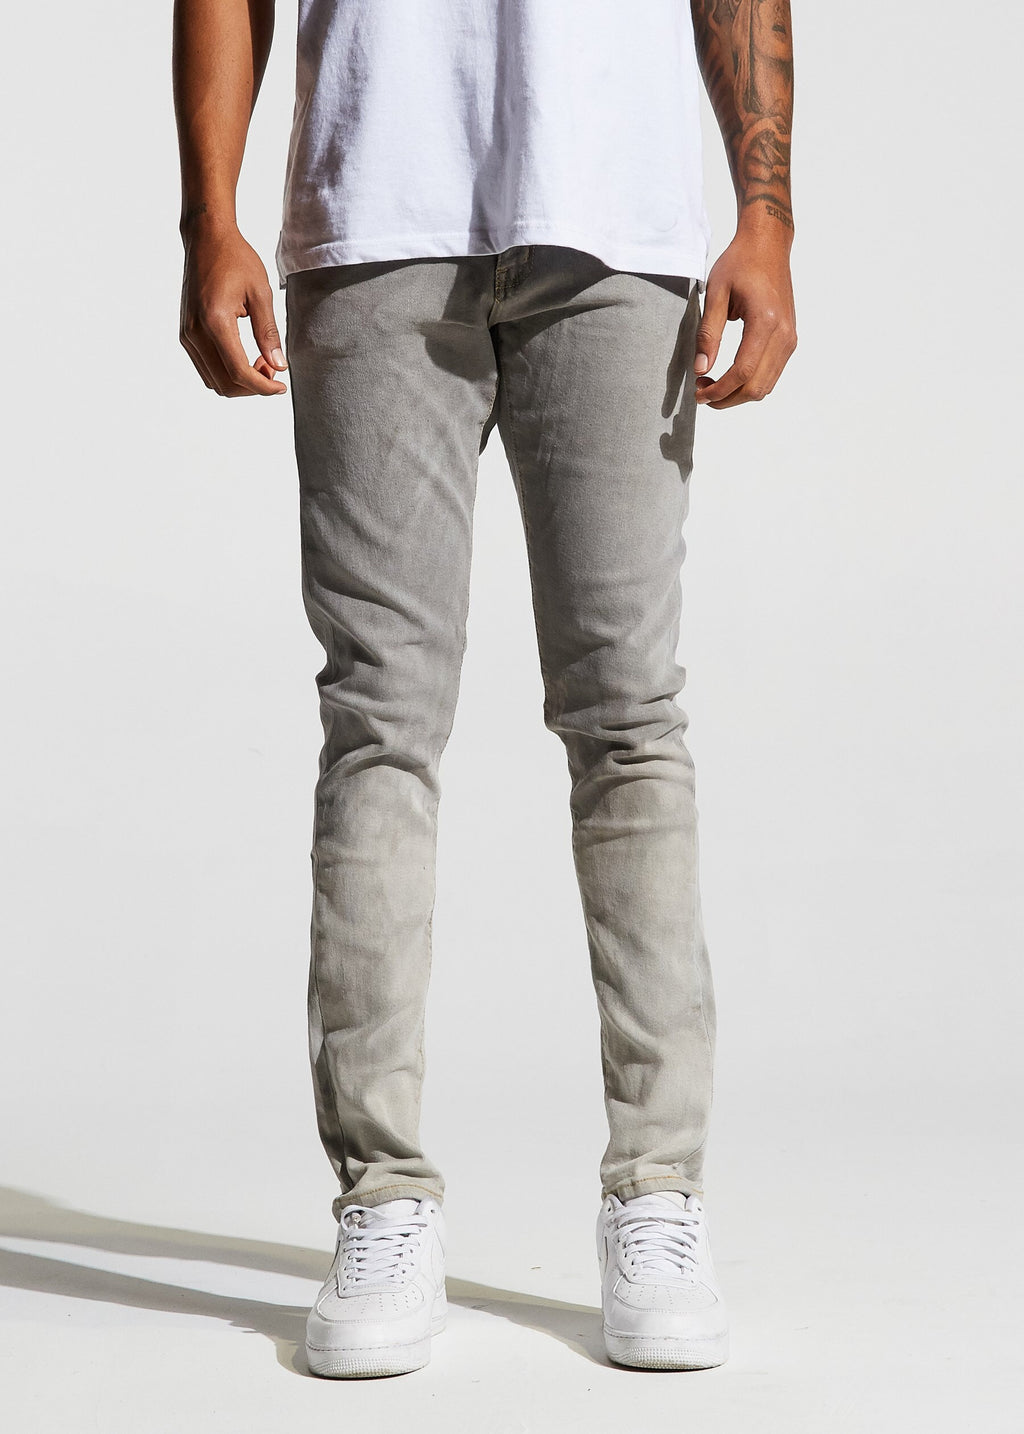 Atlantic Denim Gray